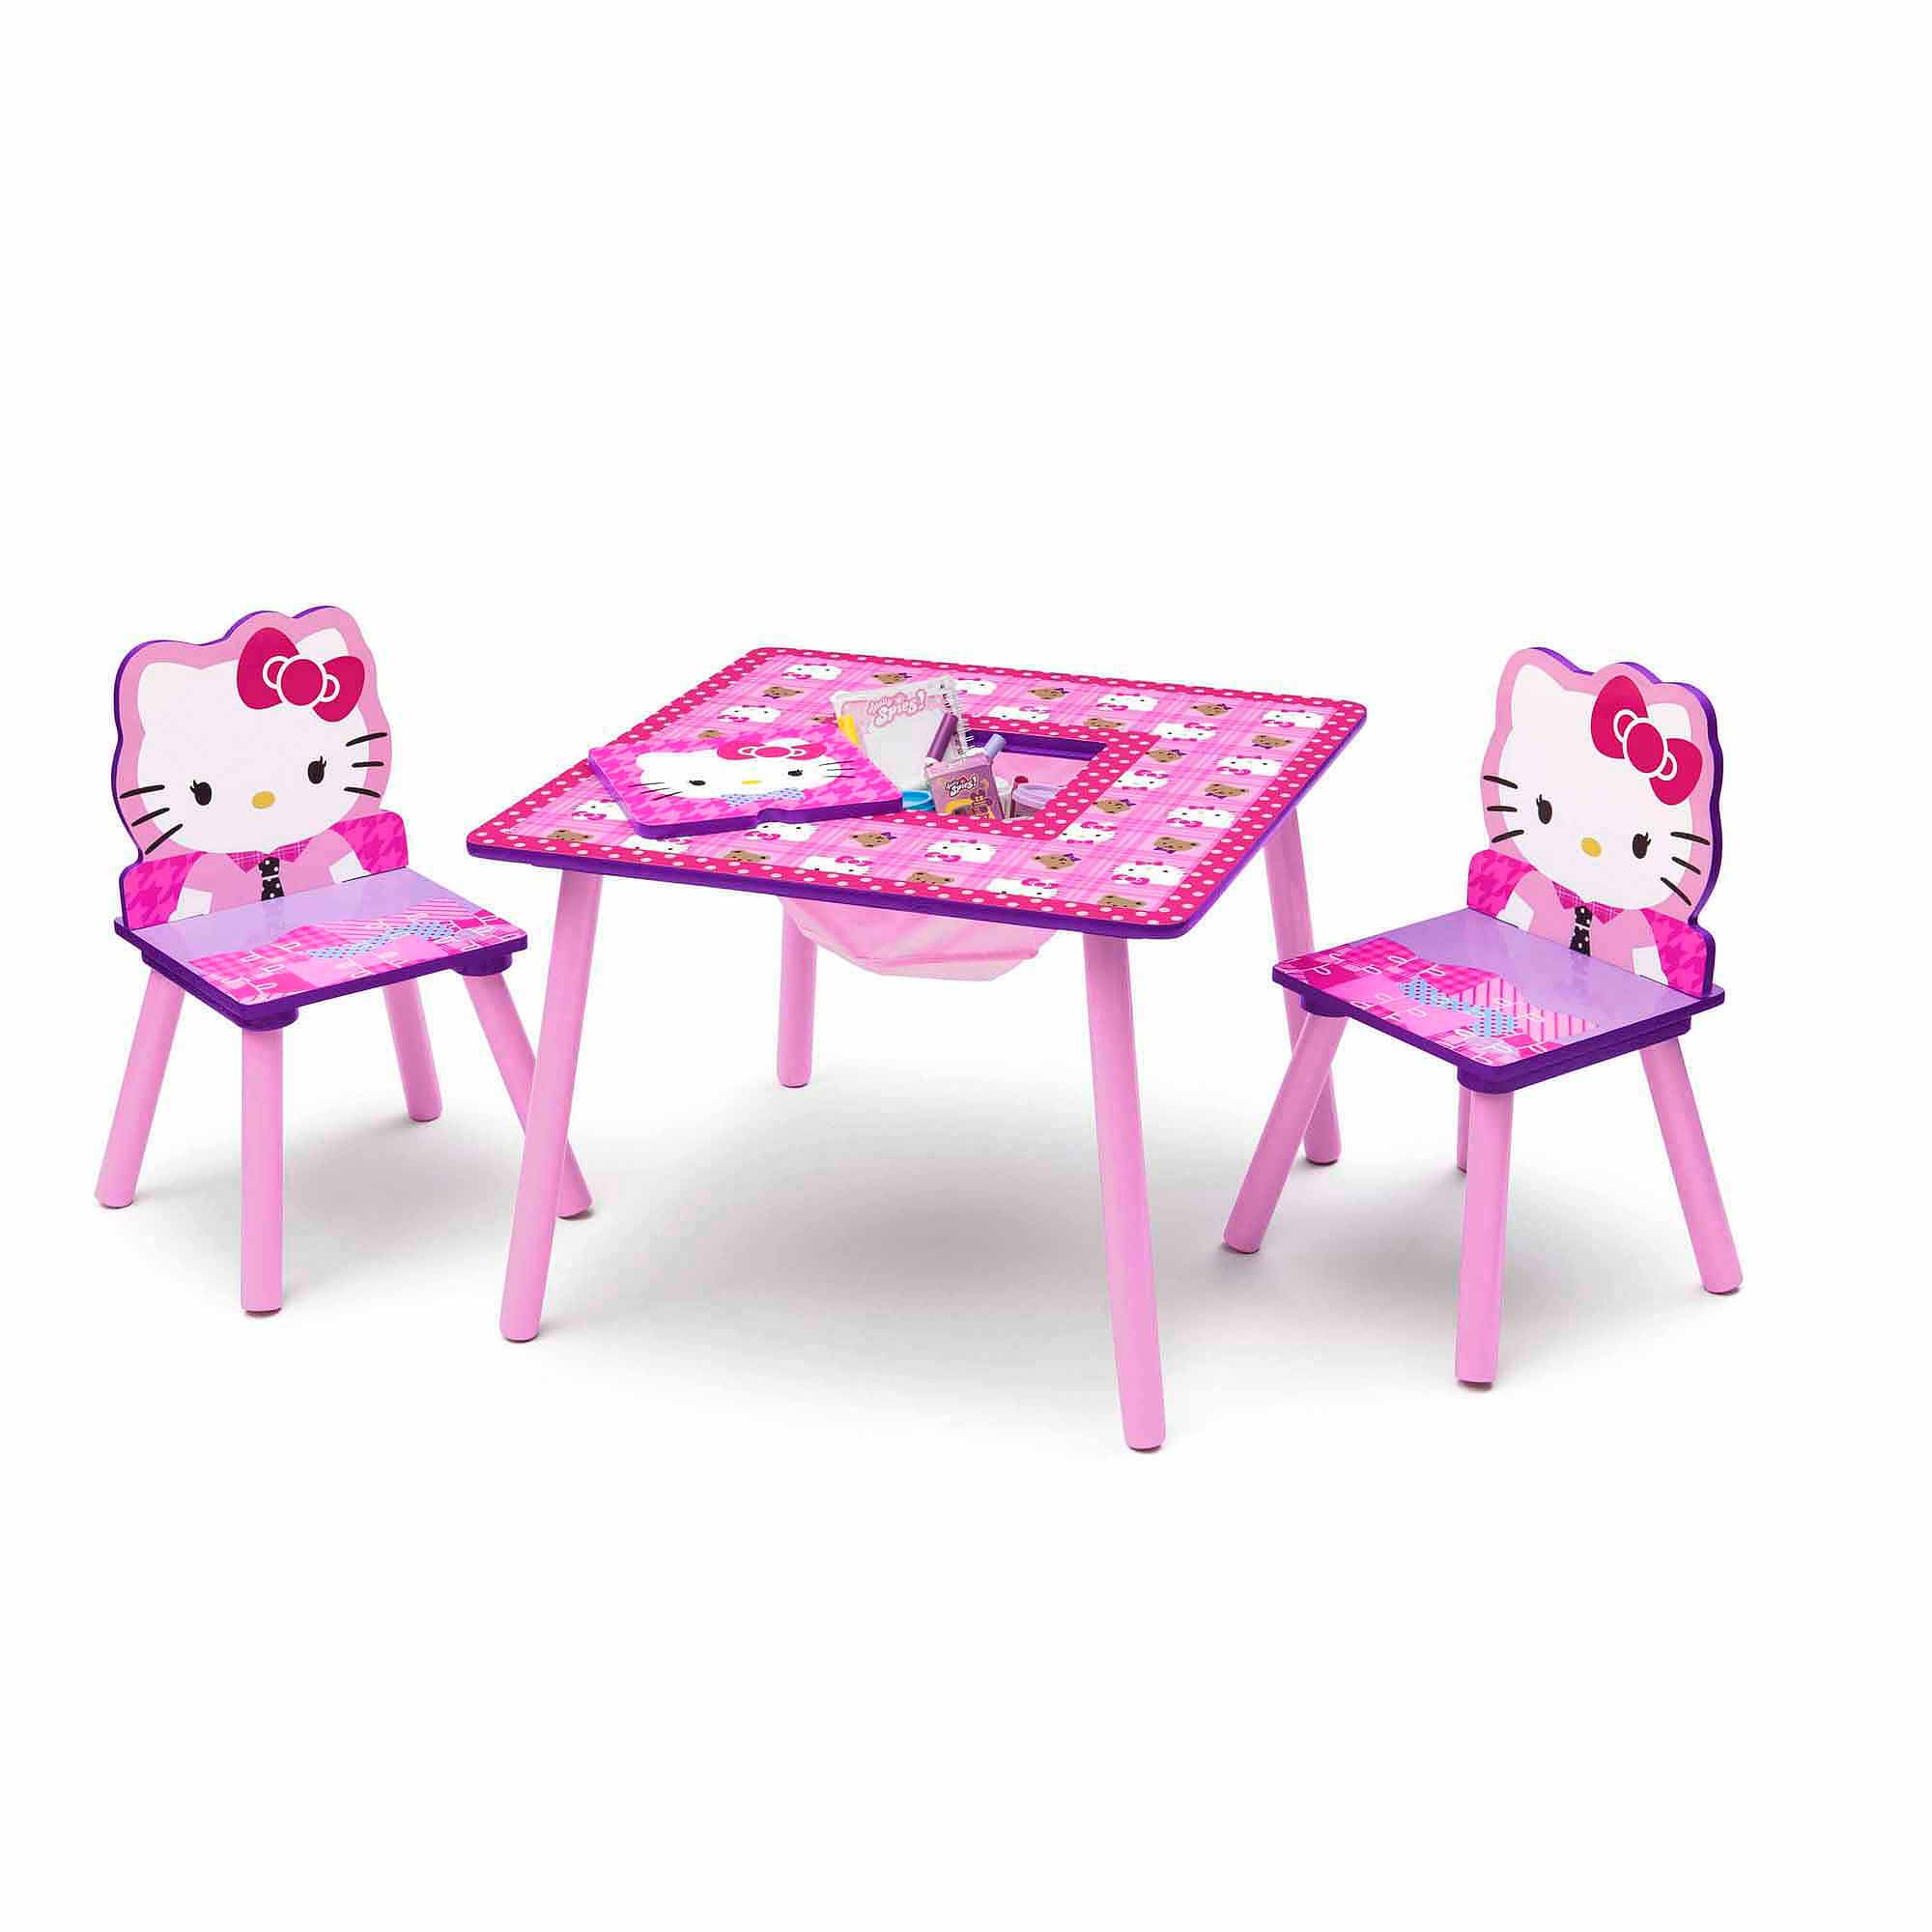 Disney Little Mermaid Desk & Chair with Storage Bin or Hello Kitty Playtable